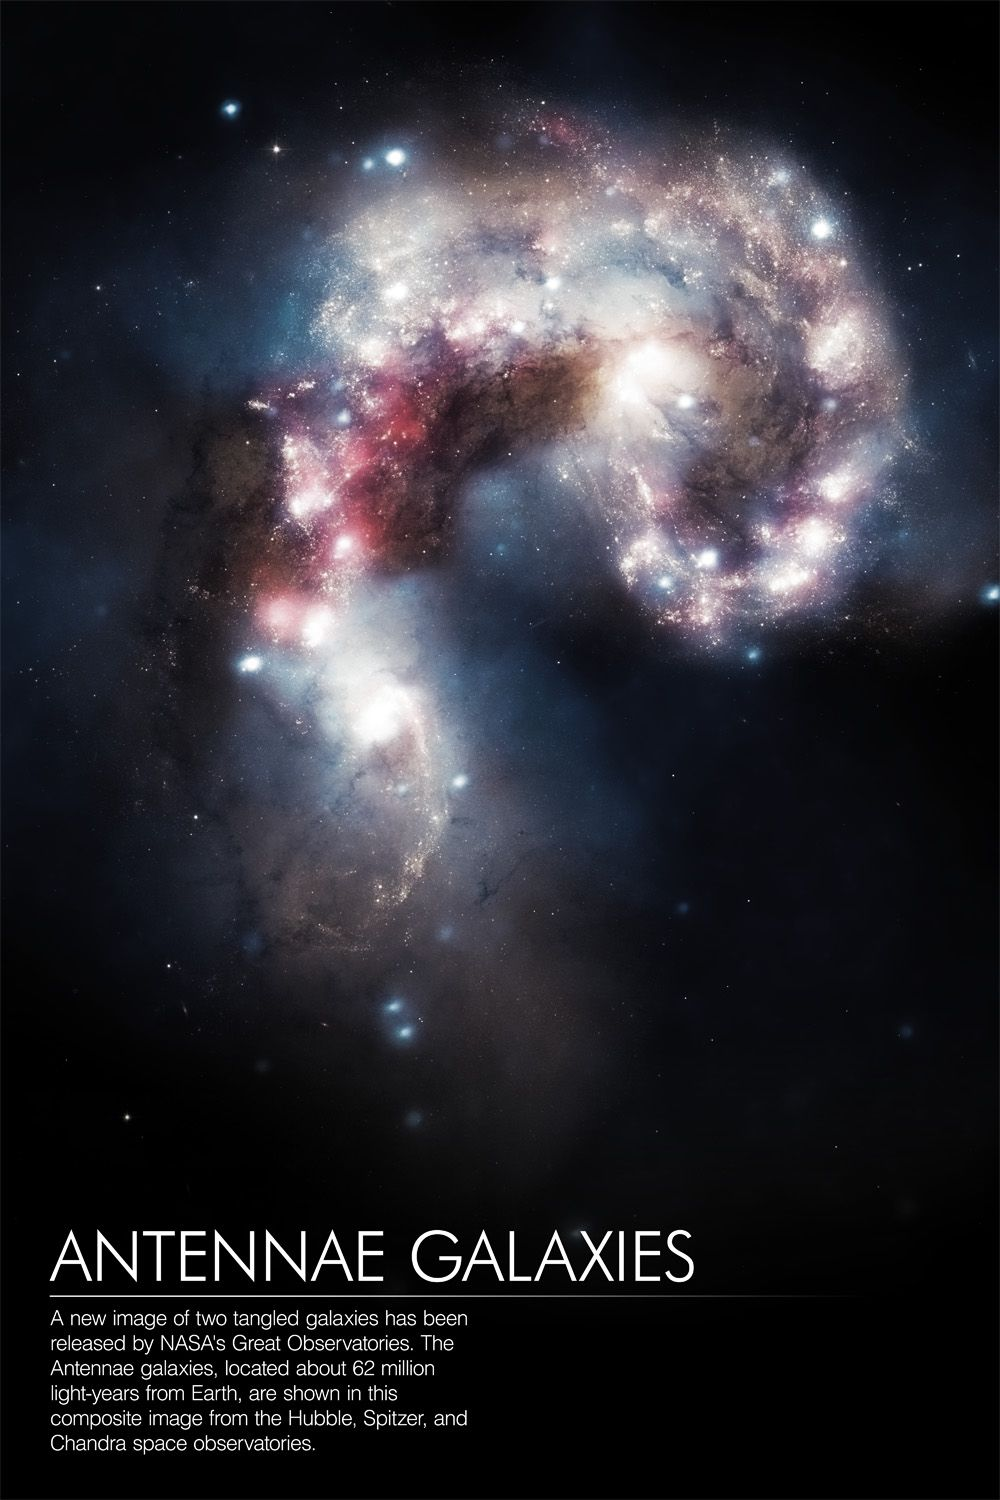 Antennae Galaxies by spacedriver. Space observatory